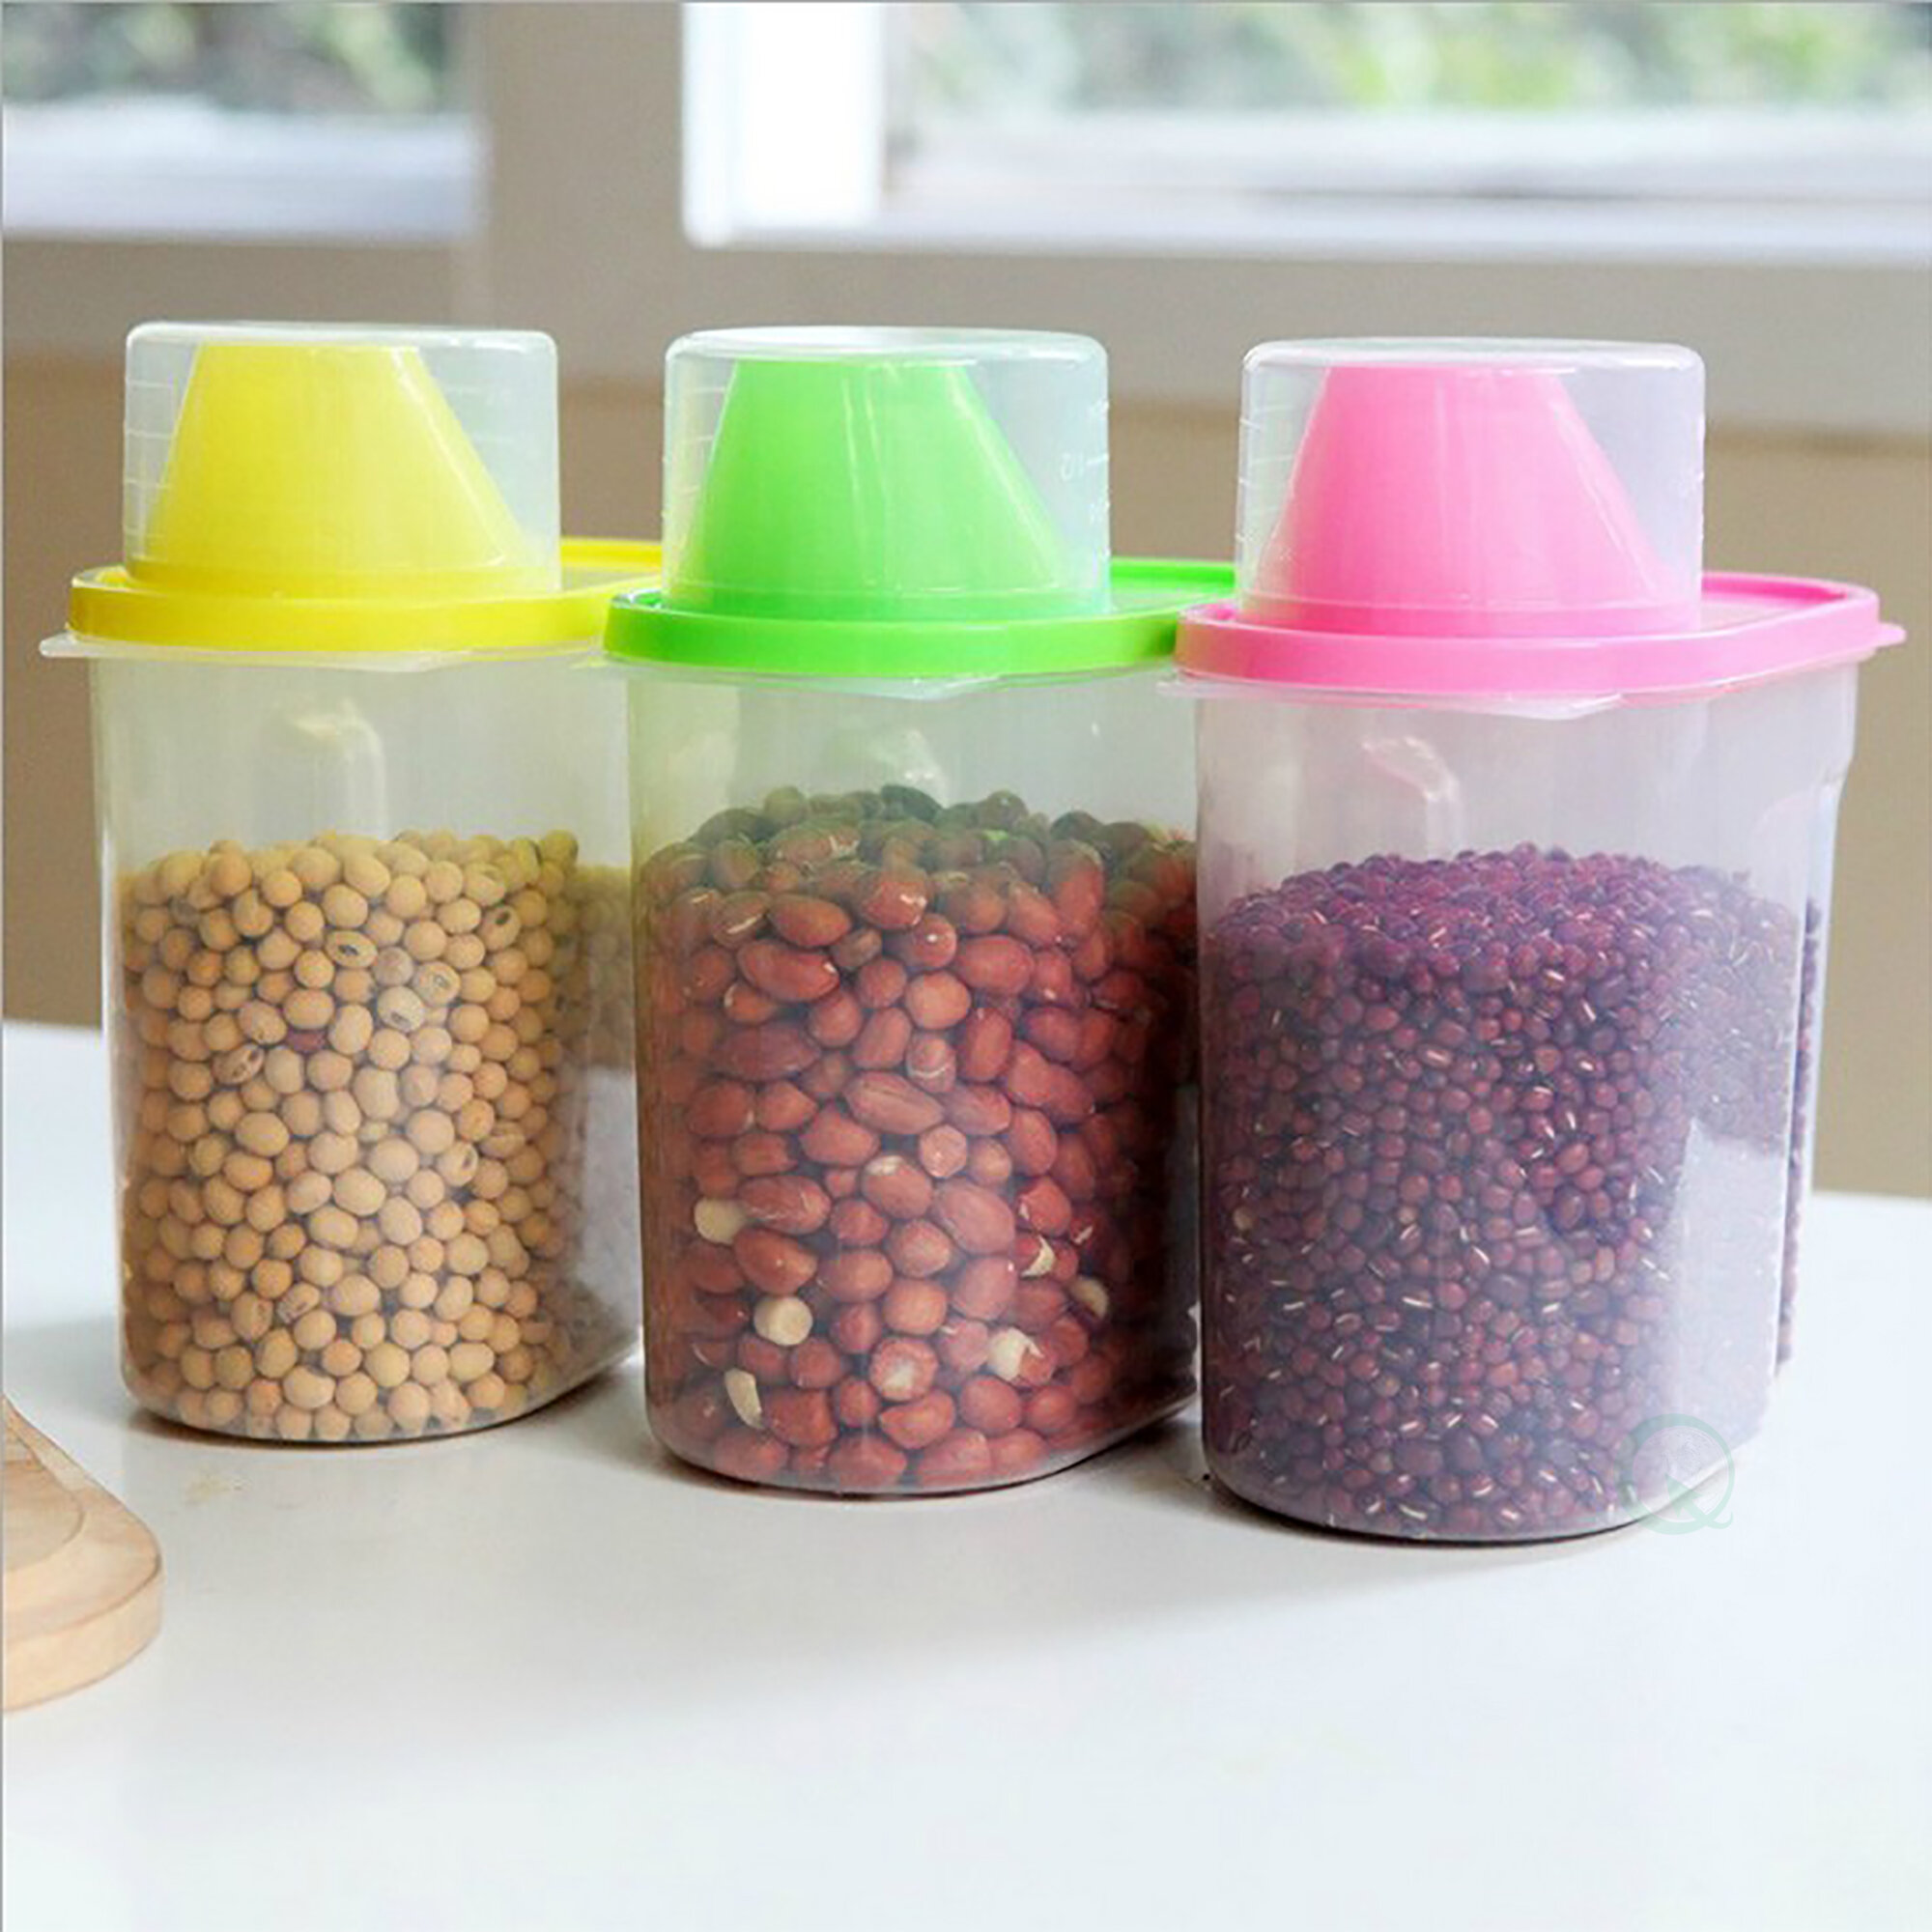 Basicwise Small Plastic Kitchen Saver 3 Container Food Storage Set